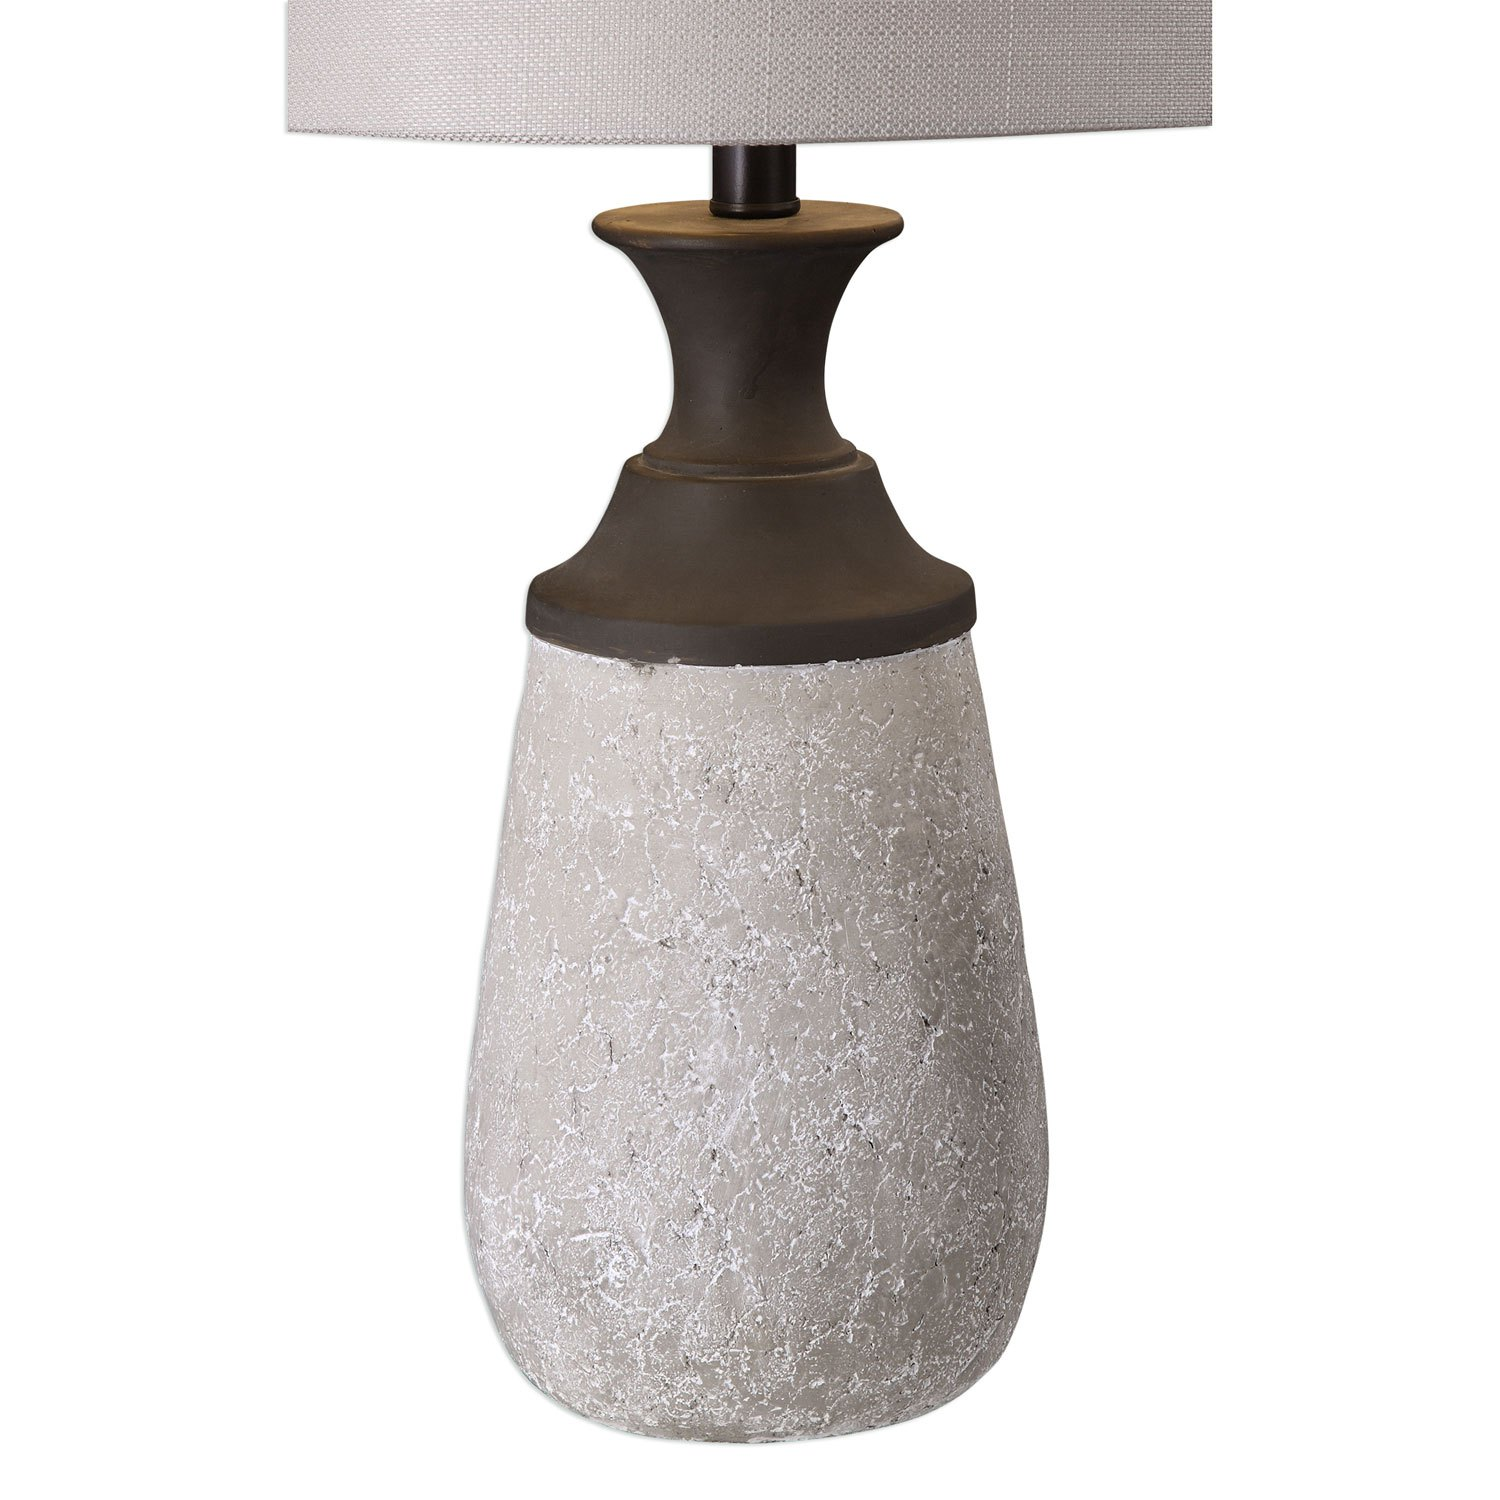 grace ivory table lamp first accent lamps wooden trestle bunnings weathered annie sloan chalk paint ideas glass end tables for living room rattan side outdoor metal console legs